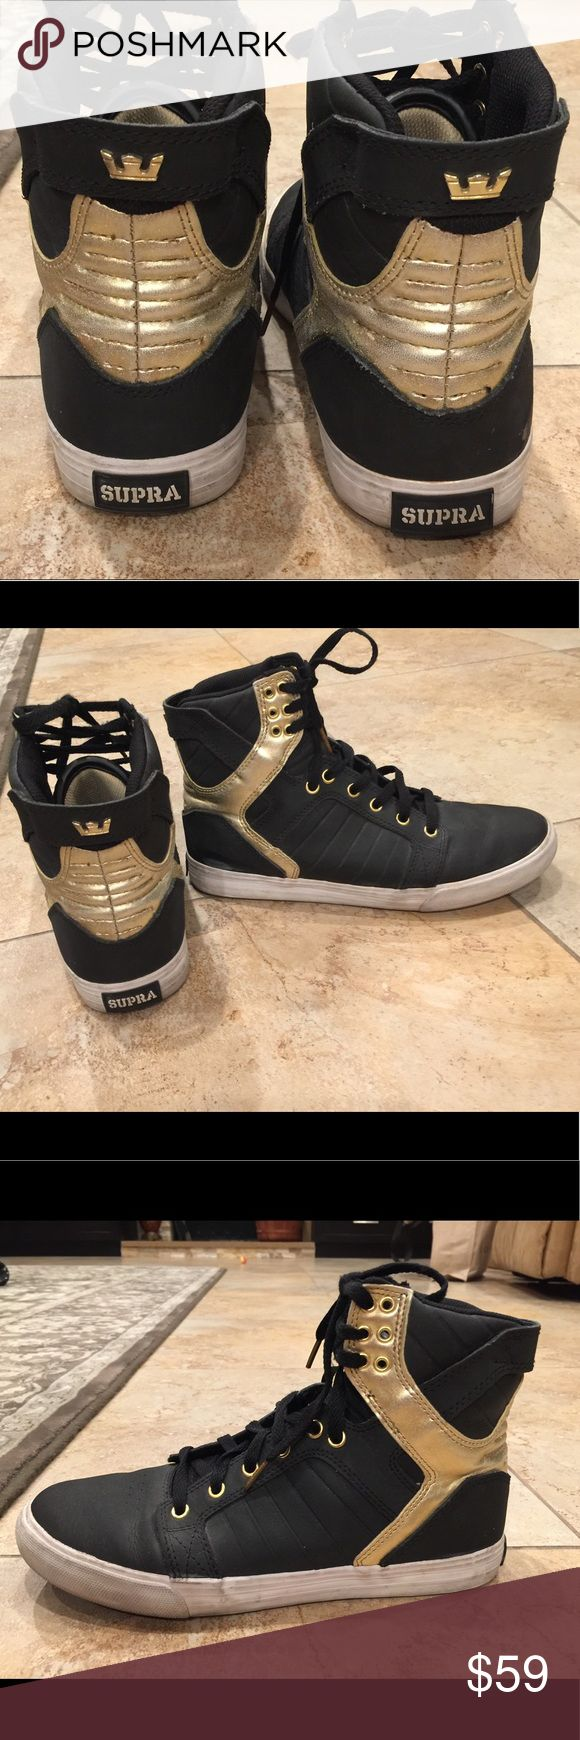 Supra high top black and gold mans size 39 Used but great  condition, black and gold color, very unique shoe. Supra Shoes Sneakers